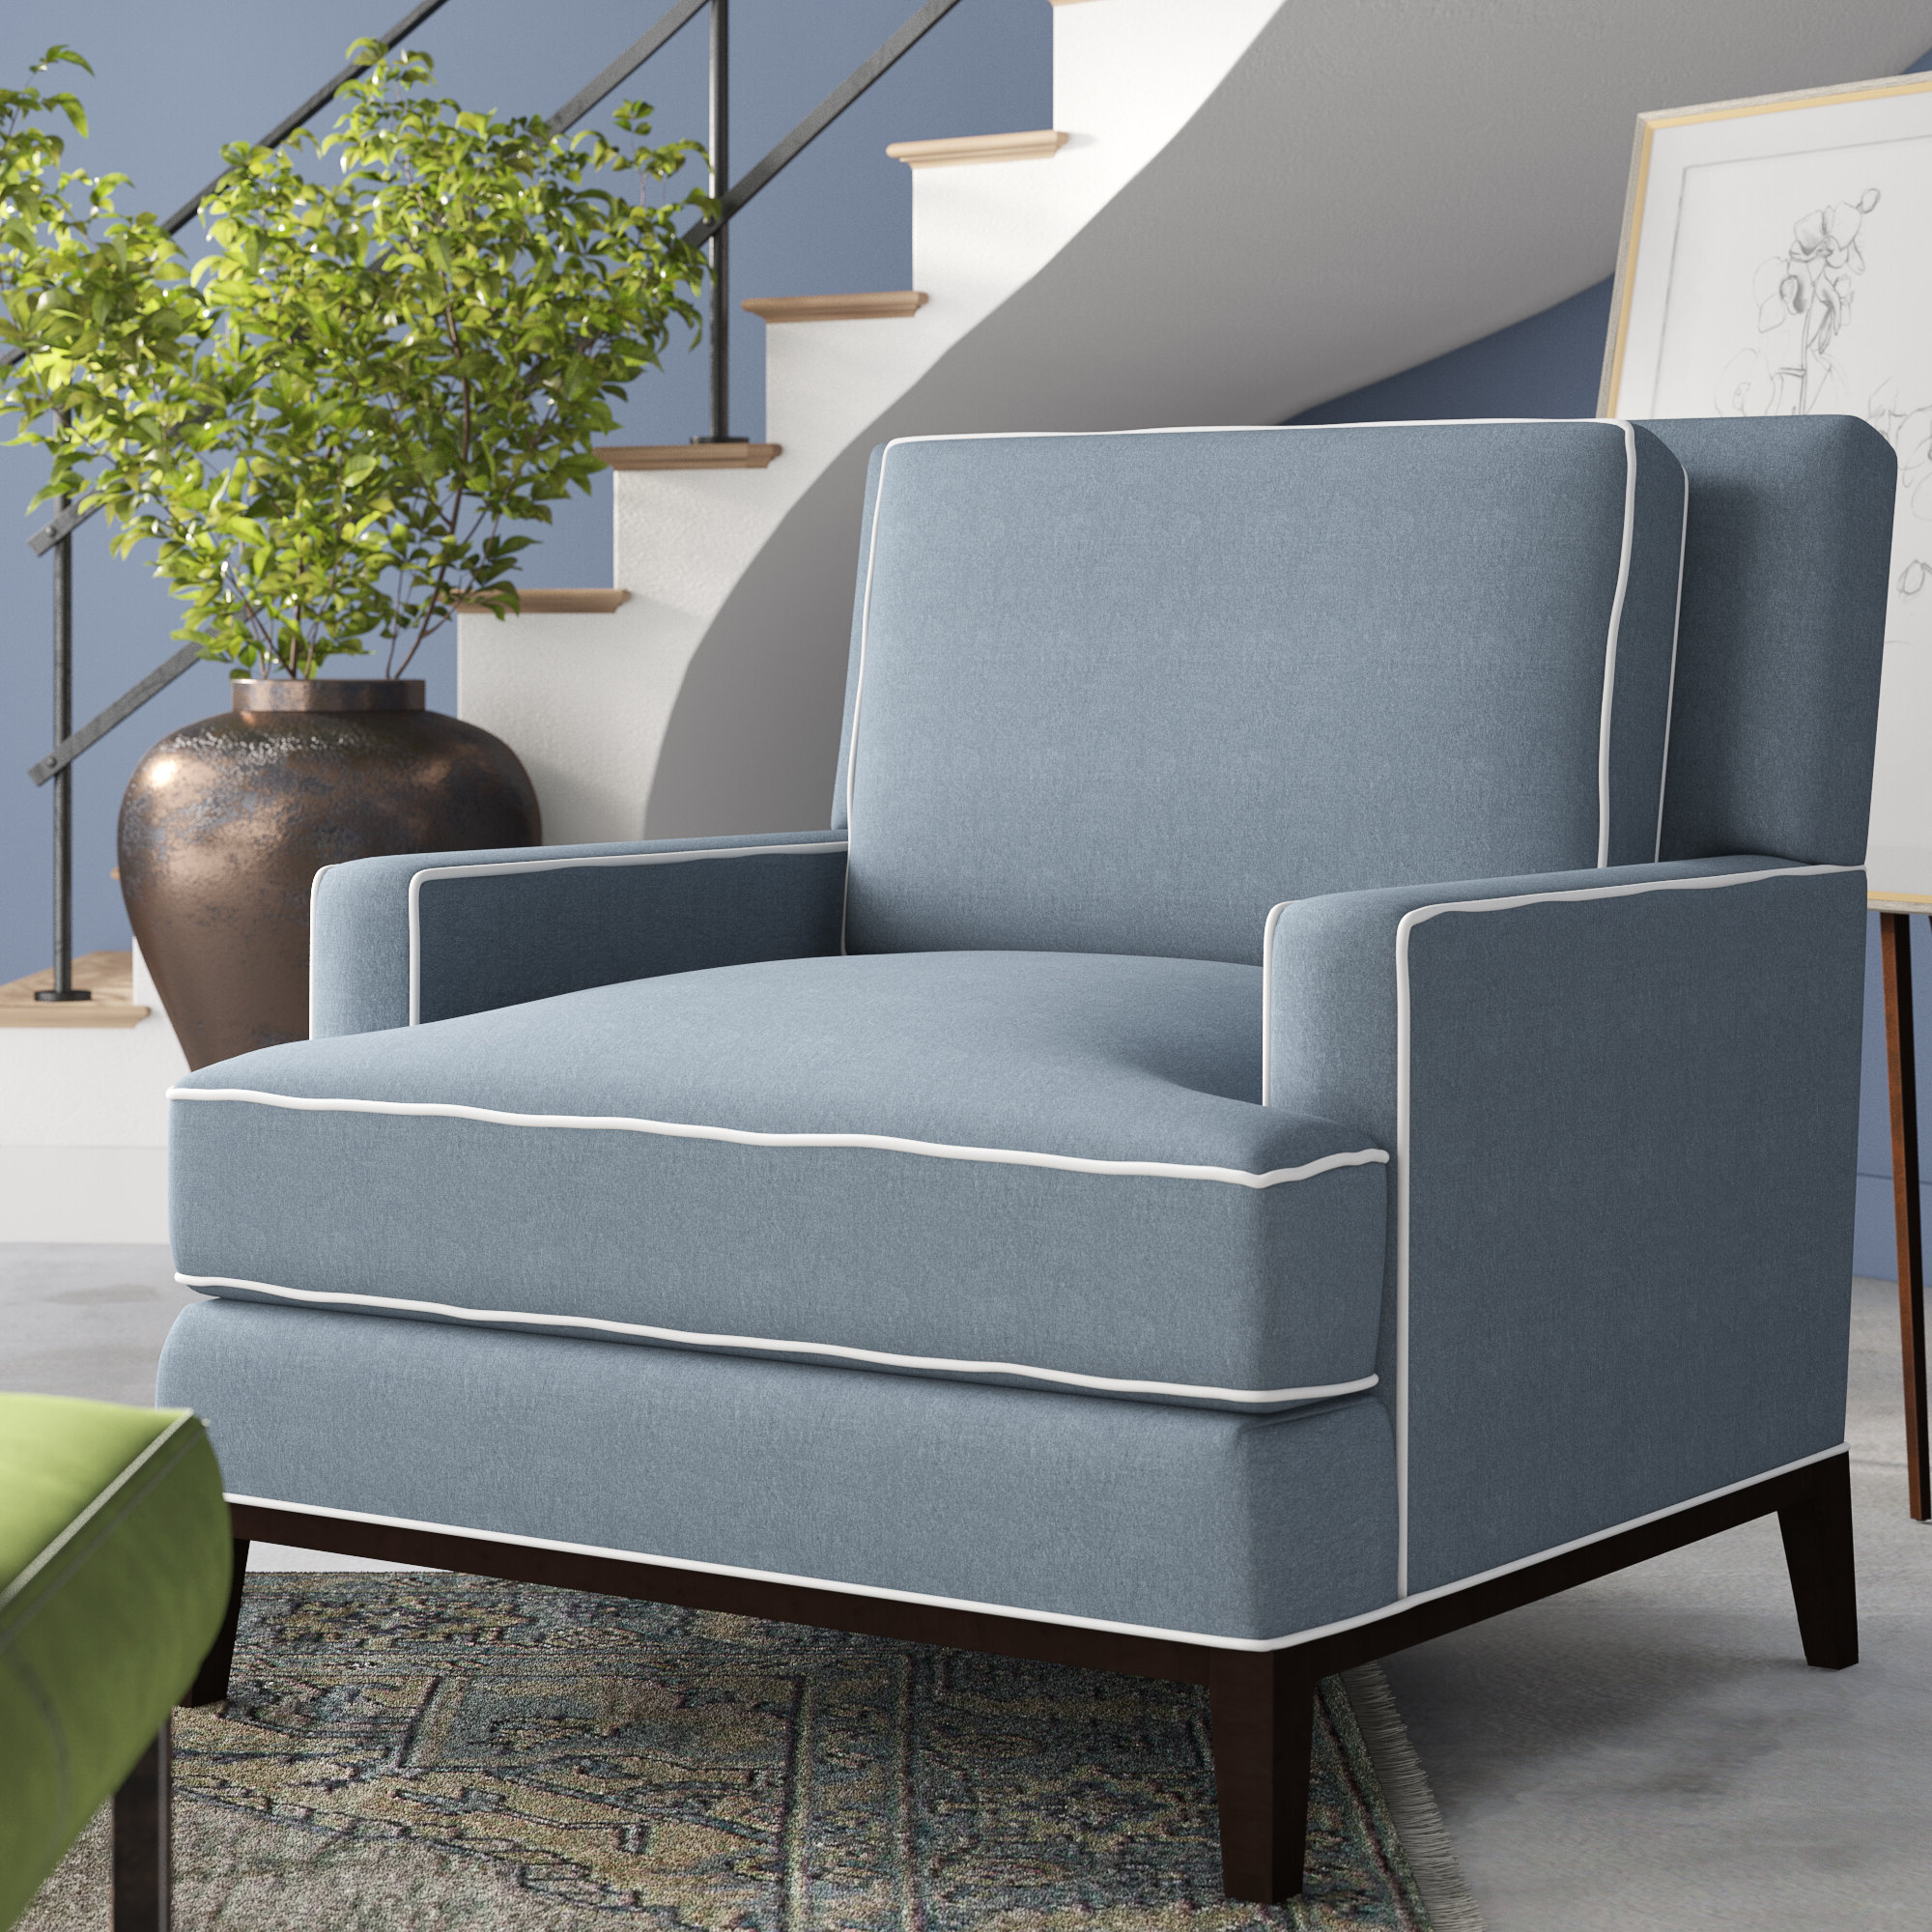 """Preferred Ronald Polyester Blend Armchairs With Andrews 39"""" W Polyester Blend Down Cushion Armchair (View 5 of 20)"""